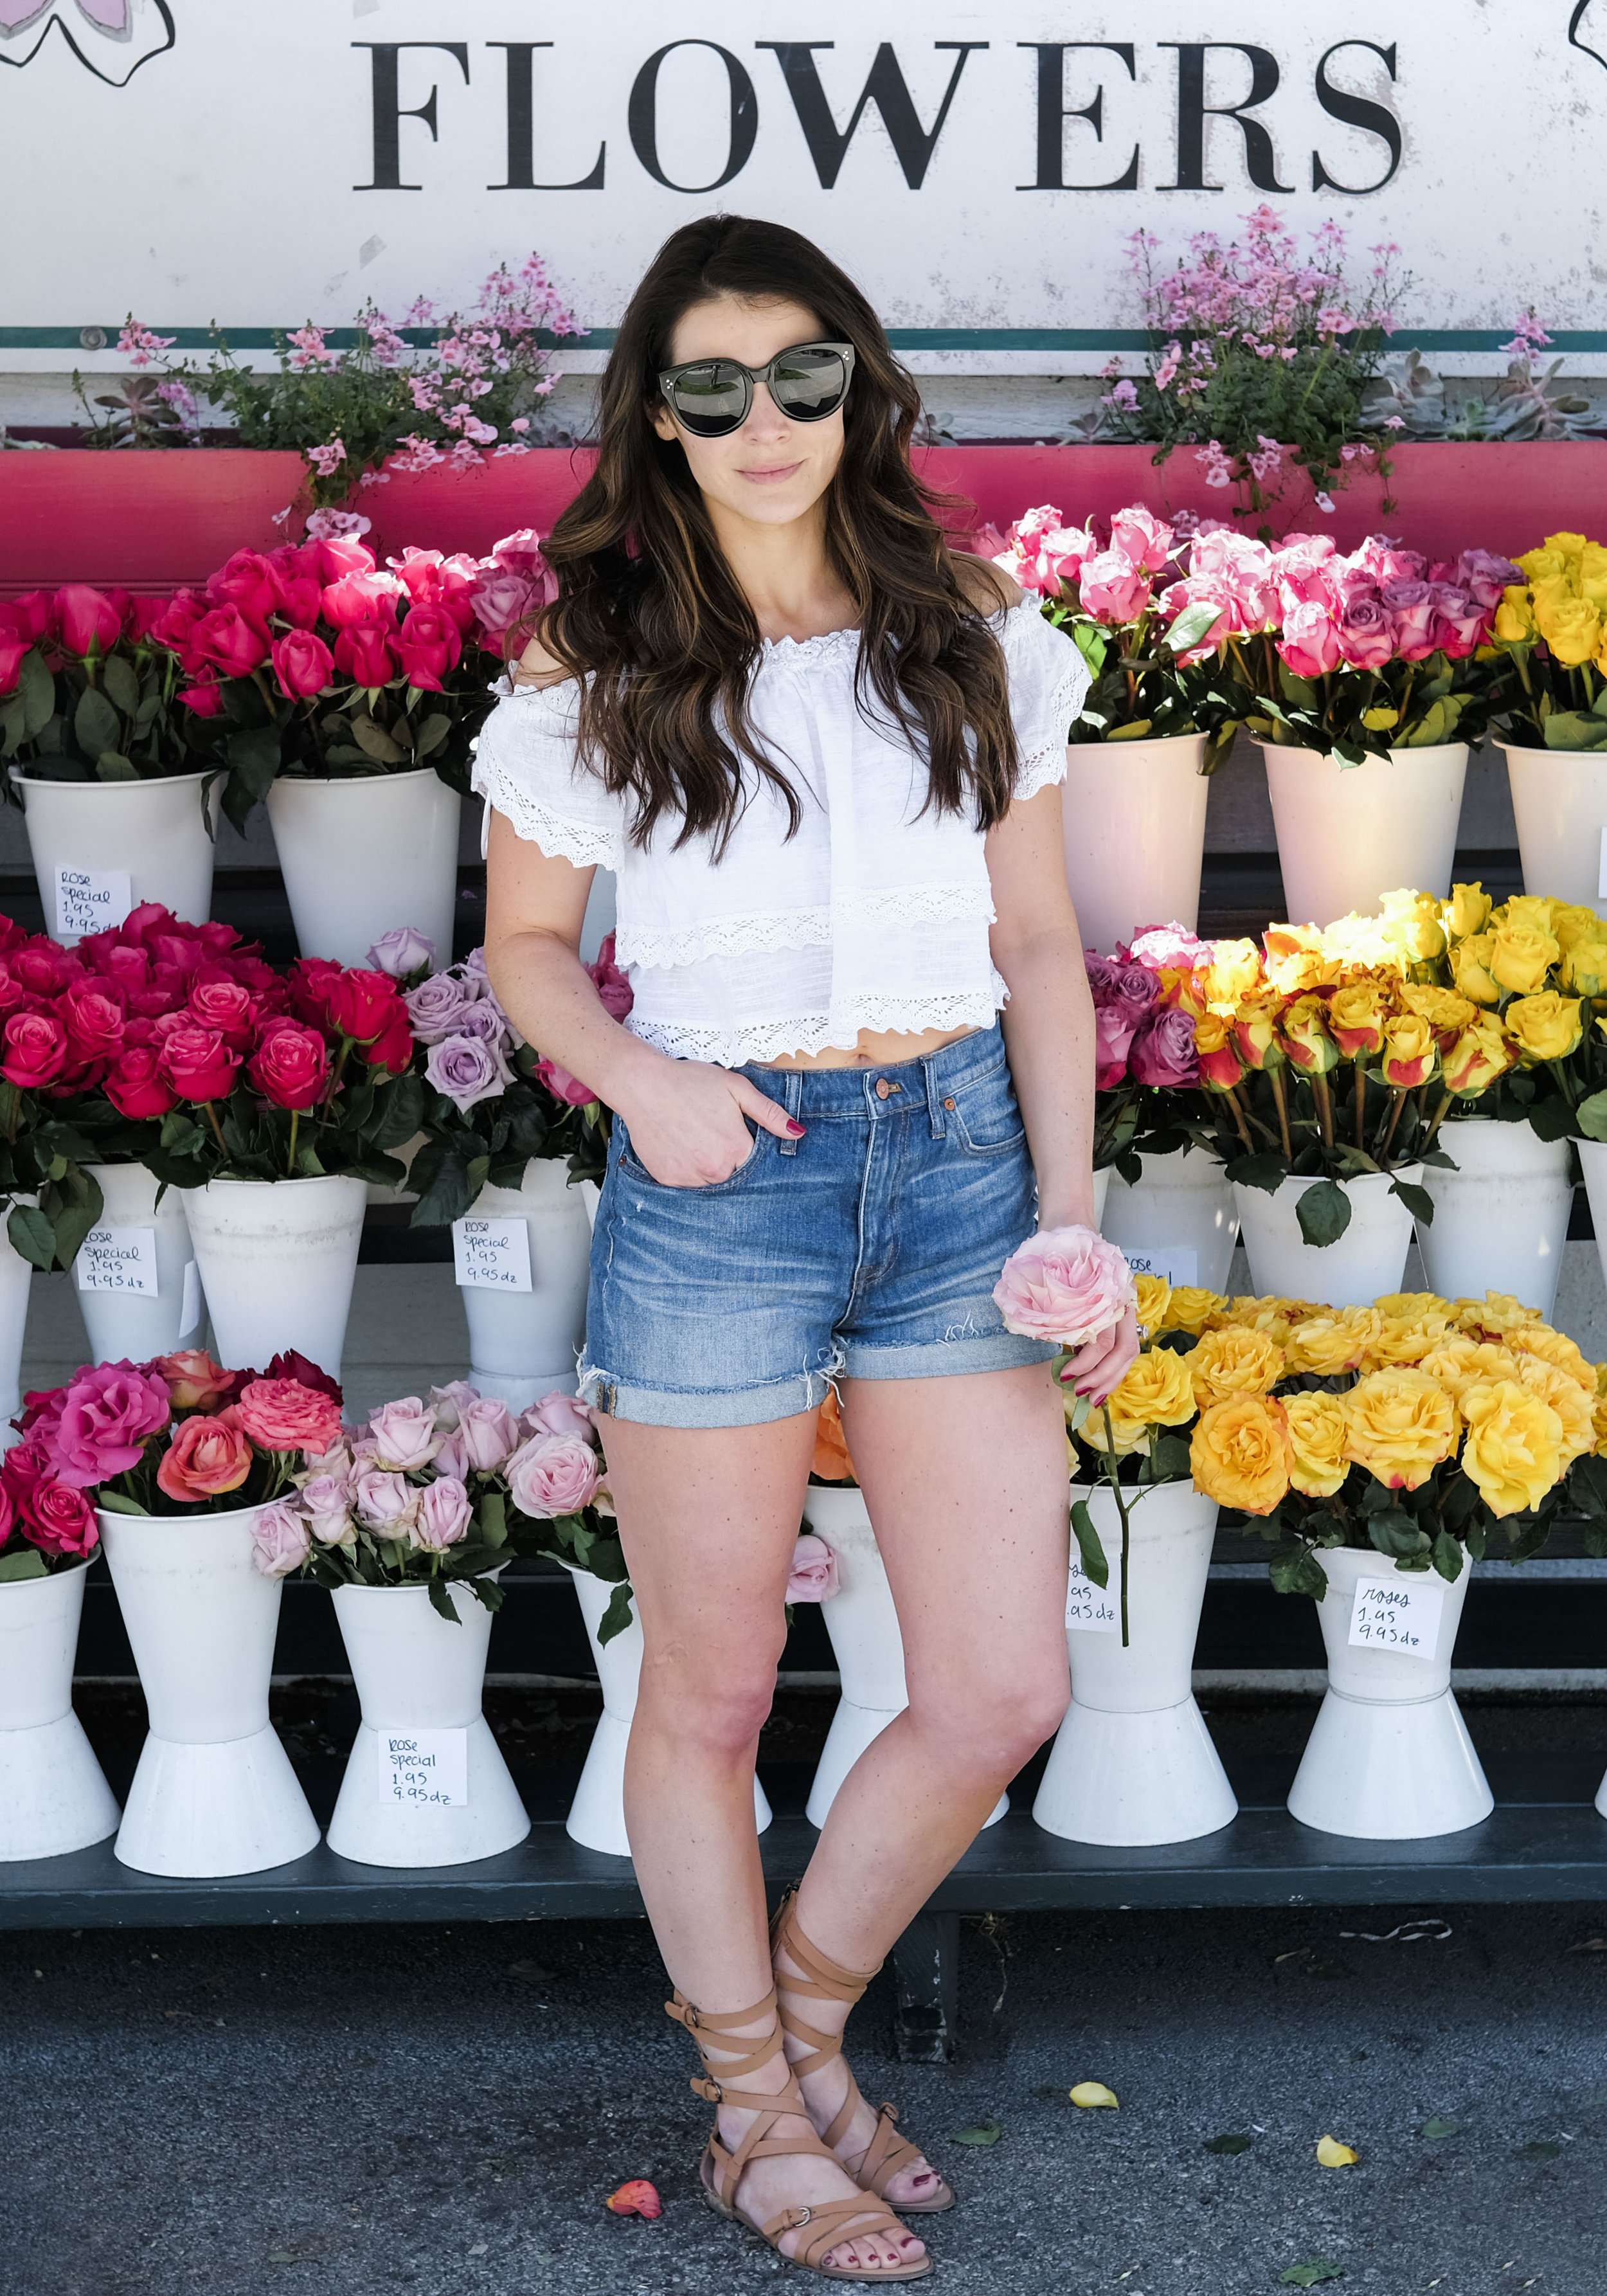 Madewell high waist cuffed denim shorts, Rip Curl Atlas off the shoulder crop top, Joes Jeans gladiator sandals, Celine audrey sunglasses.  Cute outfit to wear on vacation or at the beach.